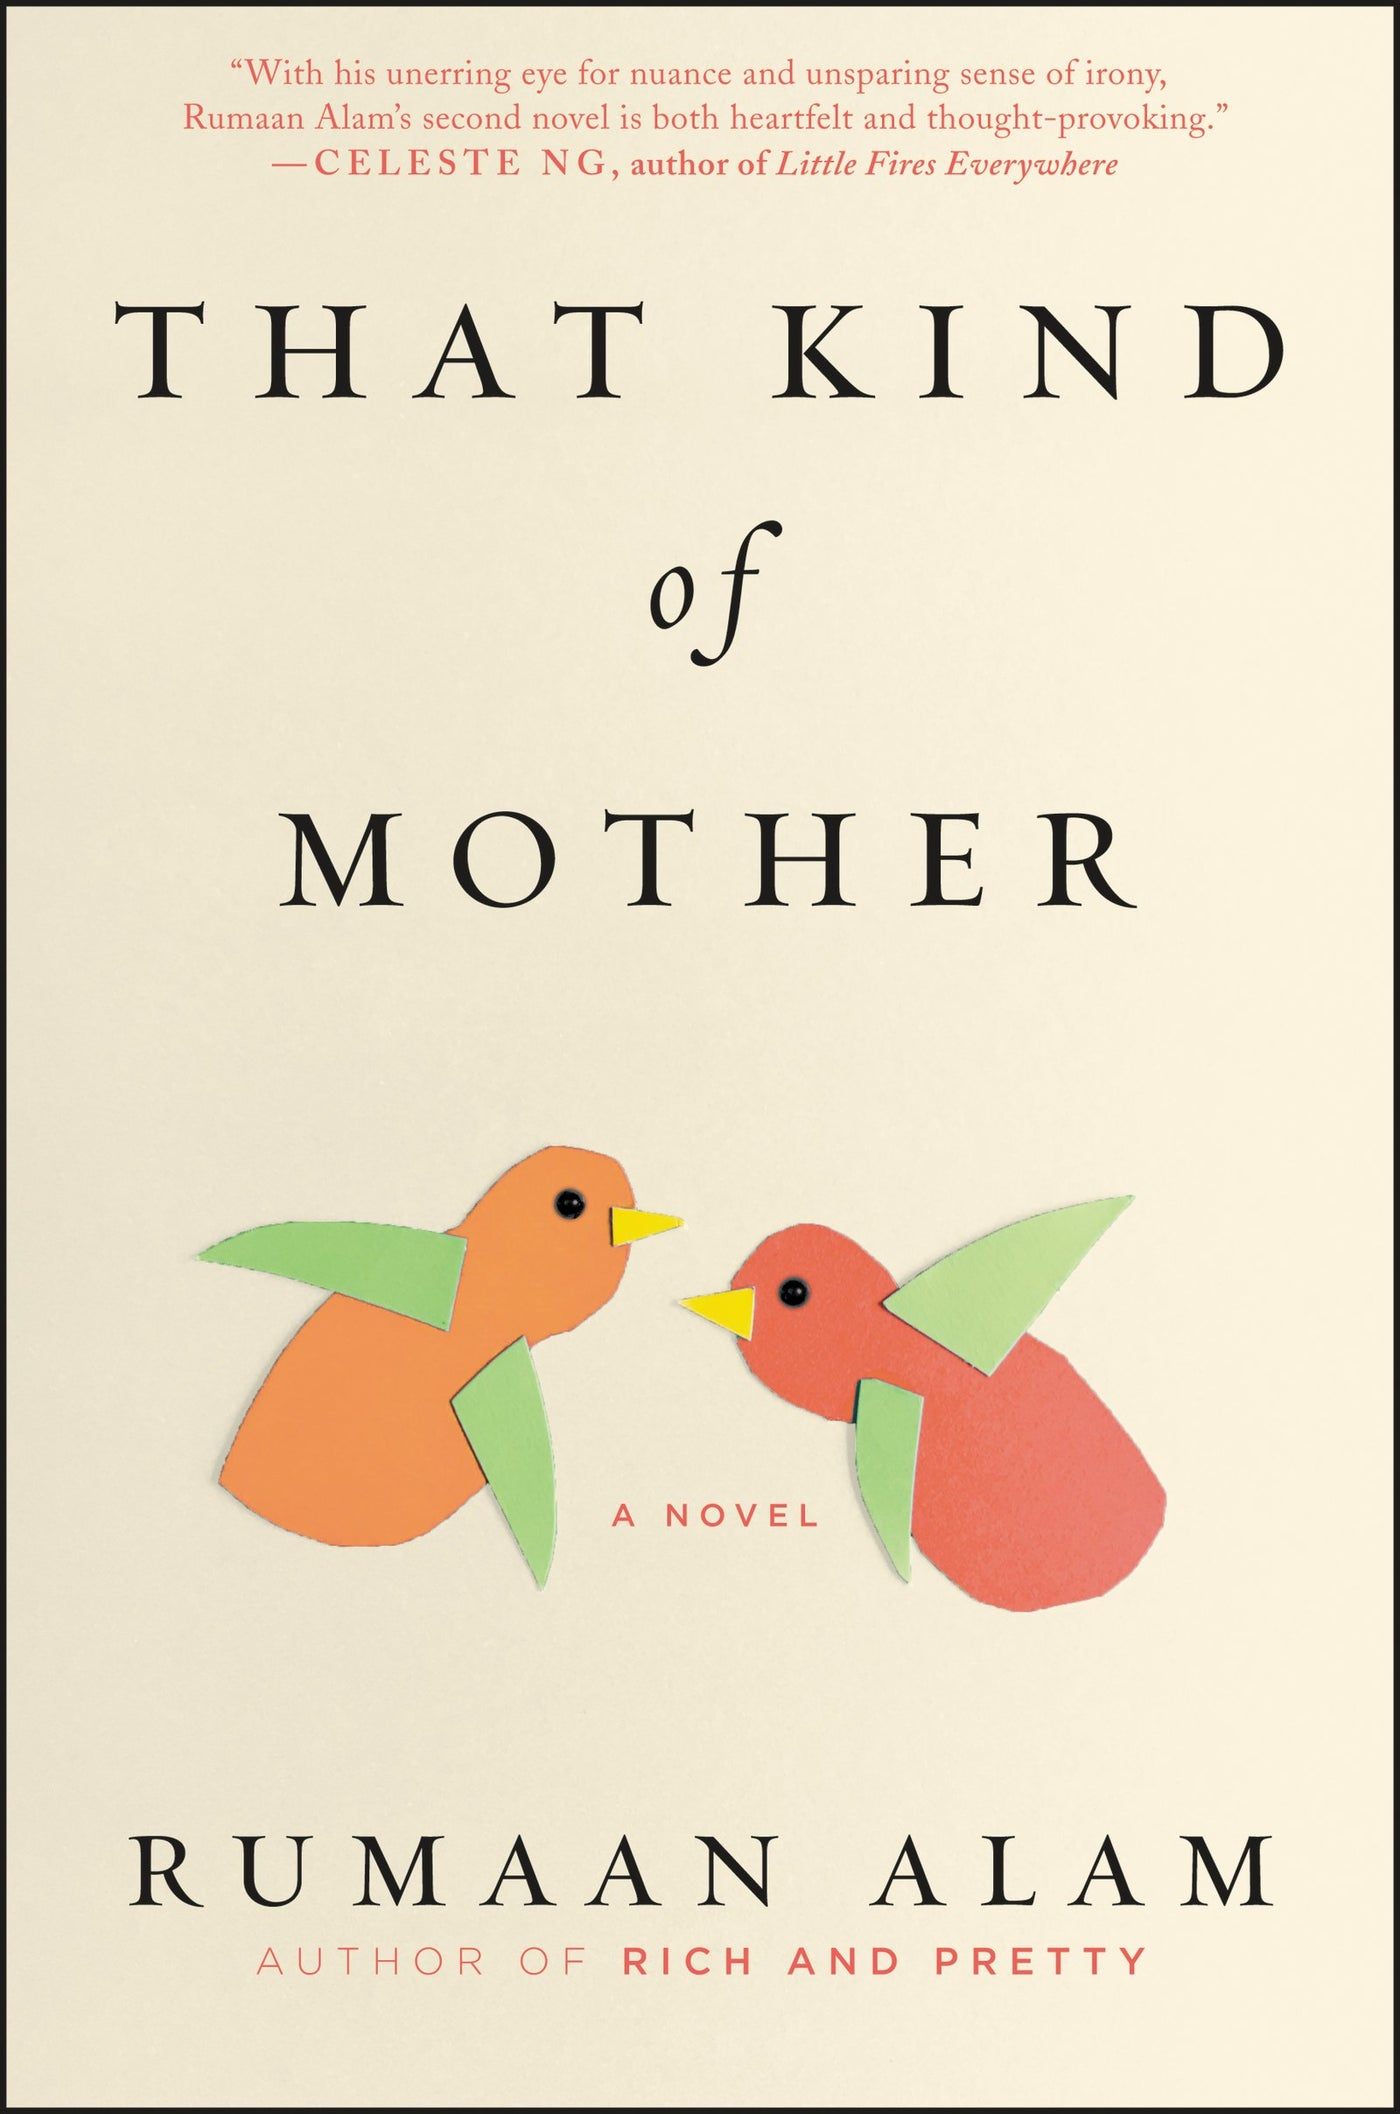 That Kind of Mother: A Novel by Rumaan Alam